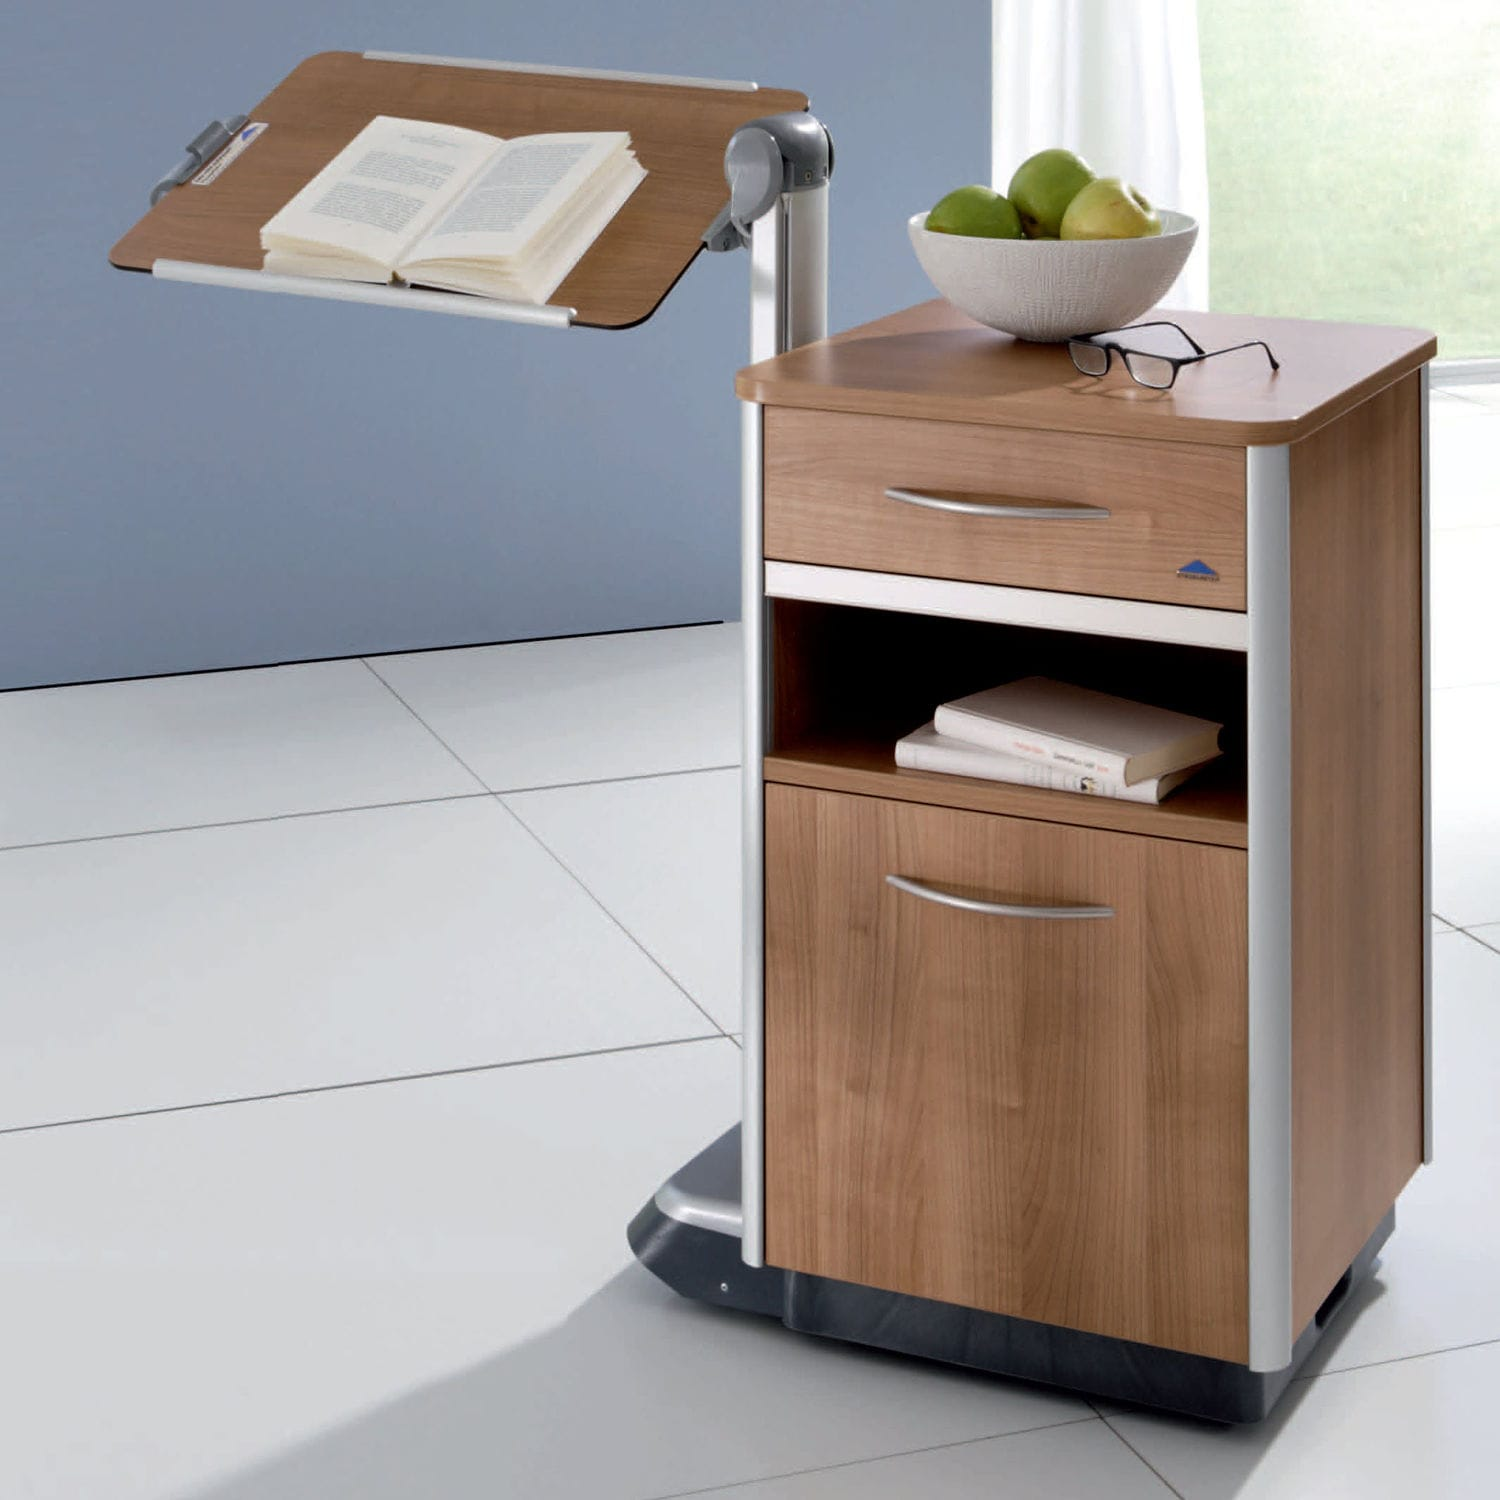 Over the bed table - Bedside Table On Casters With Integrated Over Bed Table Cosimo Stiegelmeyer Gmbh Co